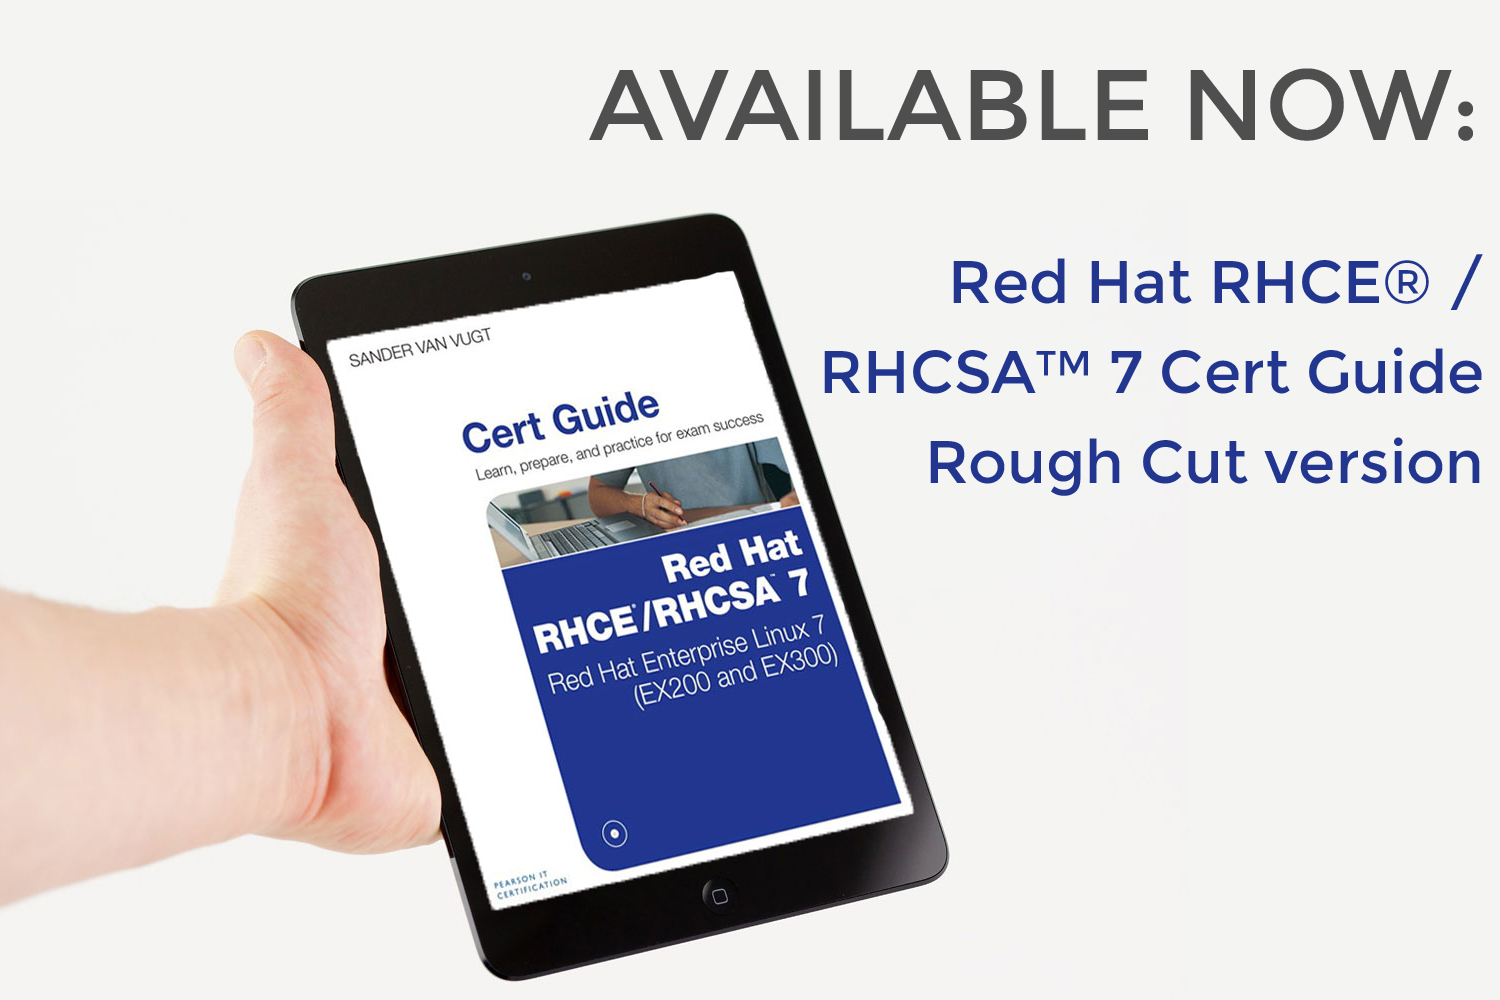 Rough Cut version of Red Hat RHCE® / RHCSA™ 7 Cert Guide available now